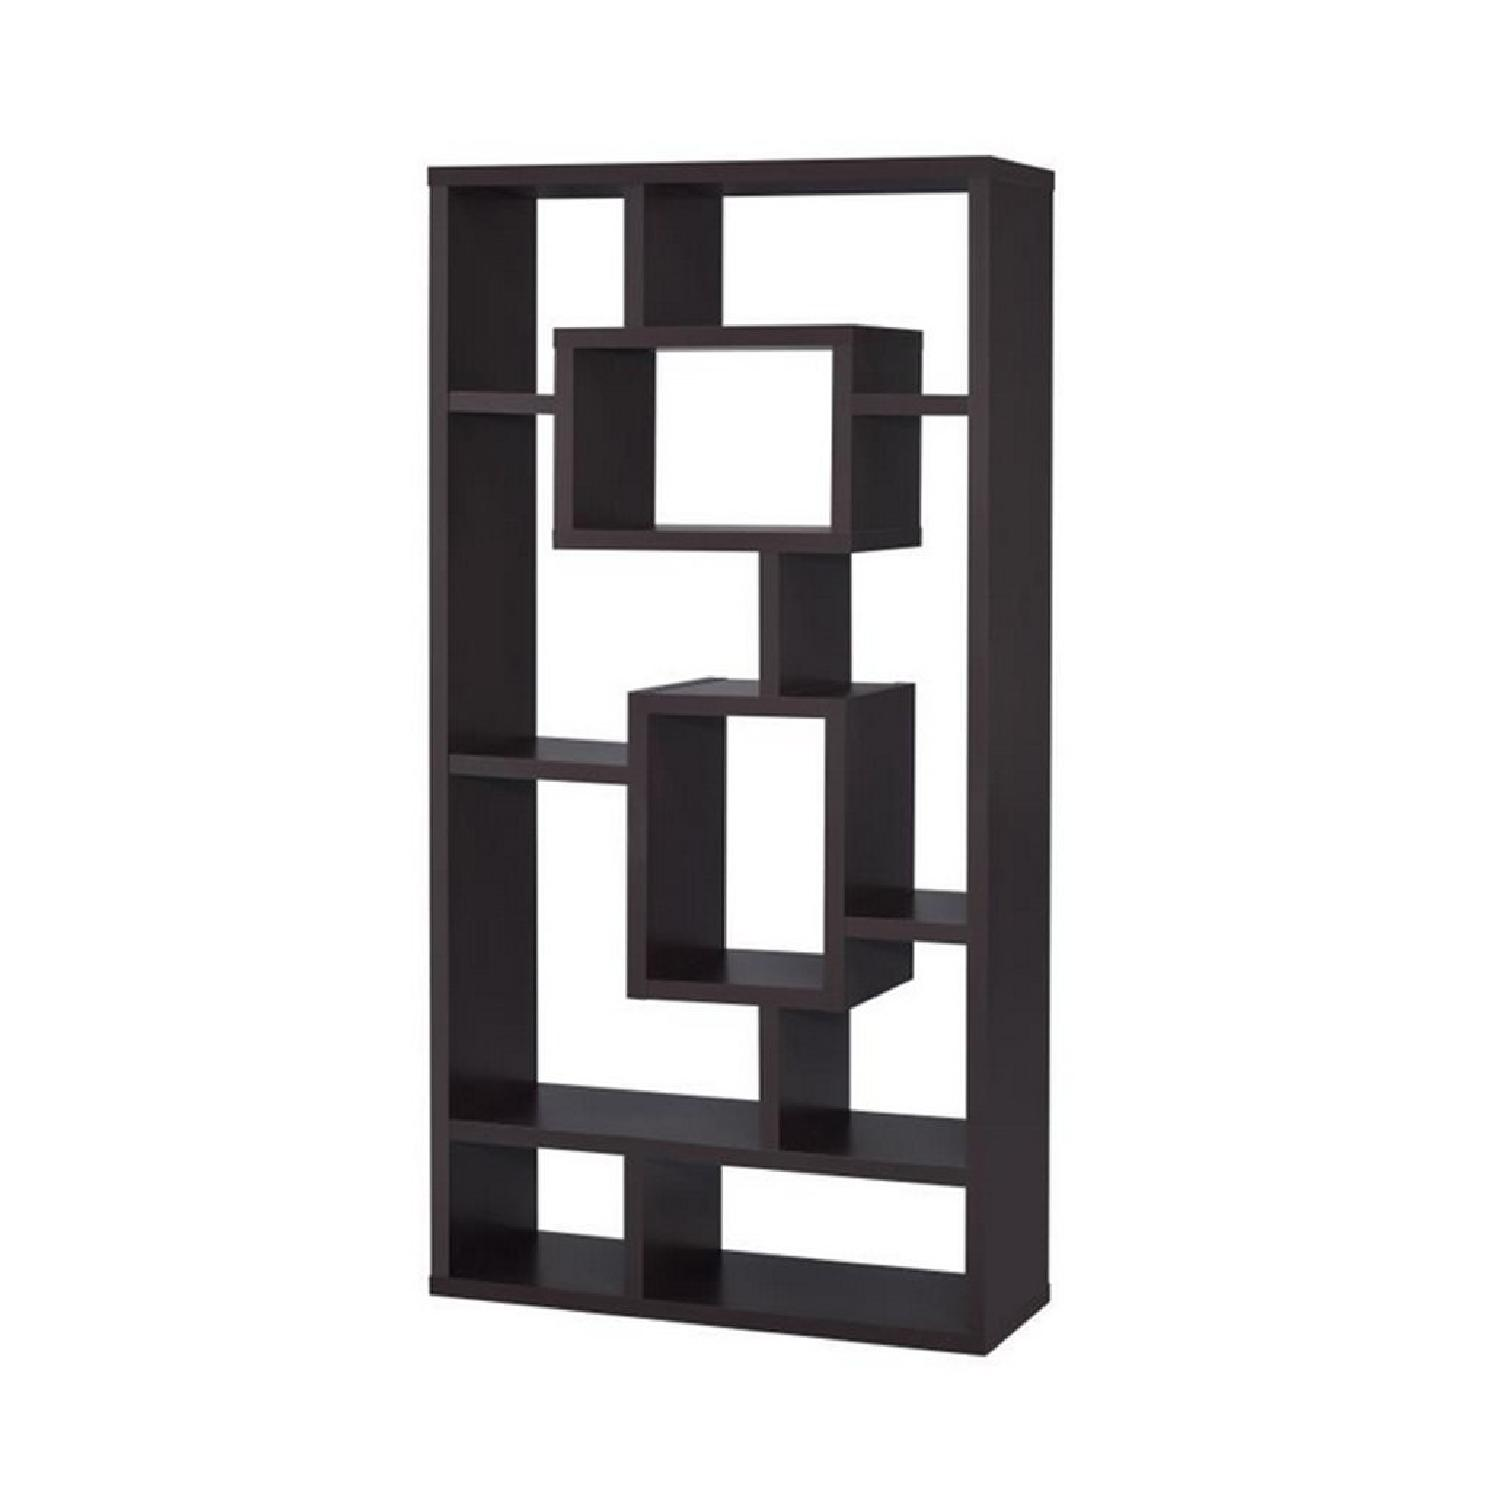 Bookcase Display Cabinet in Black Finish